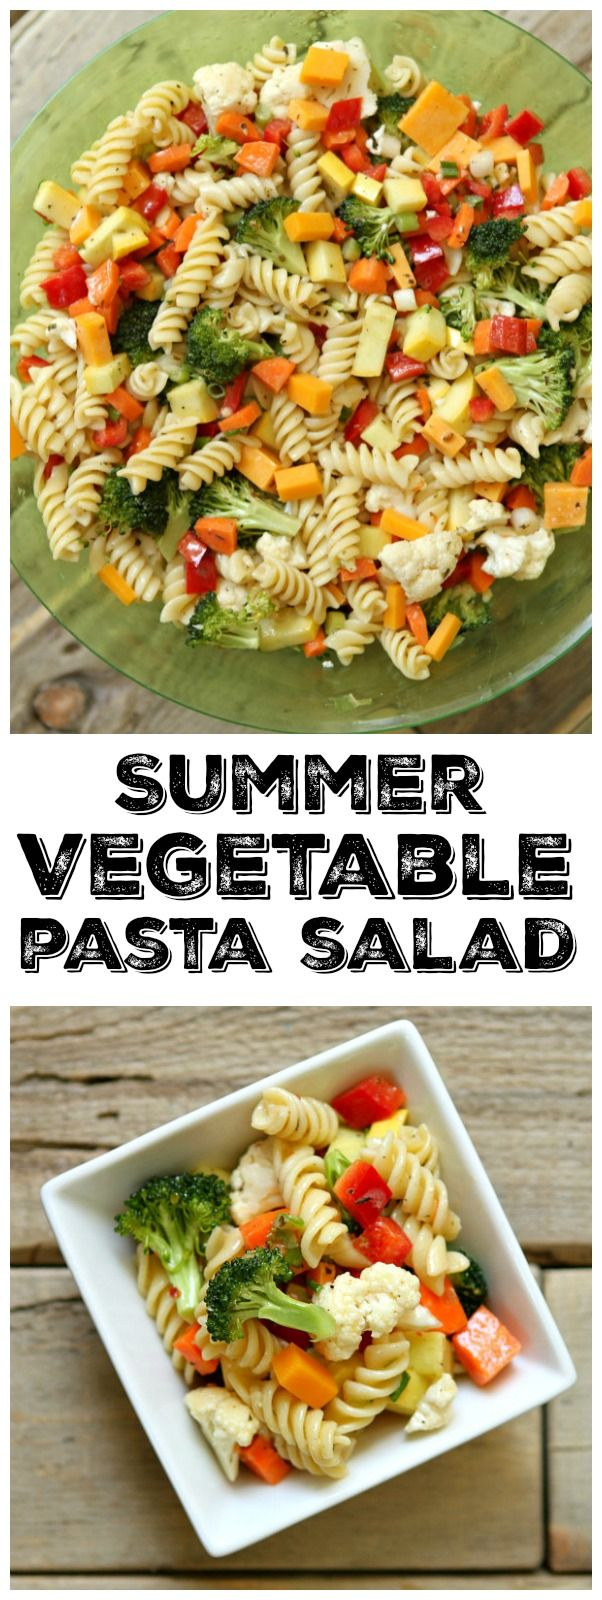 Easy Summer Vegetable Pasta Salad recipe: perfect for summer holiday parties, BBQ's and potlucks.